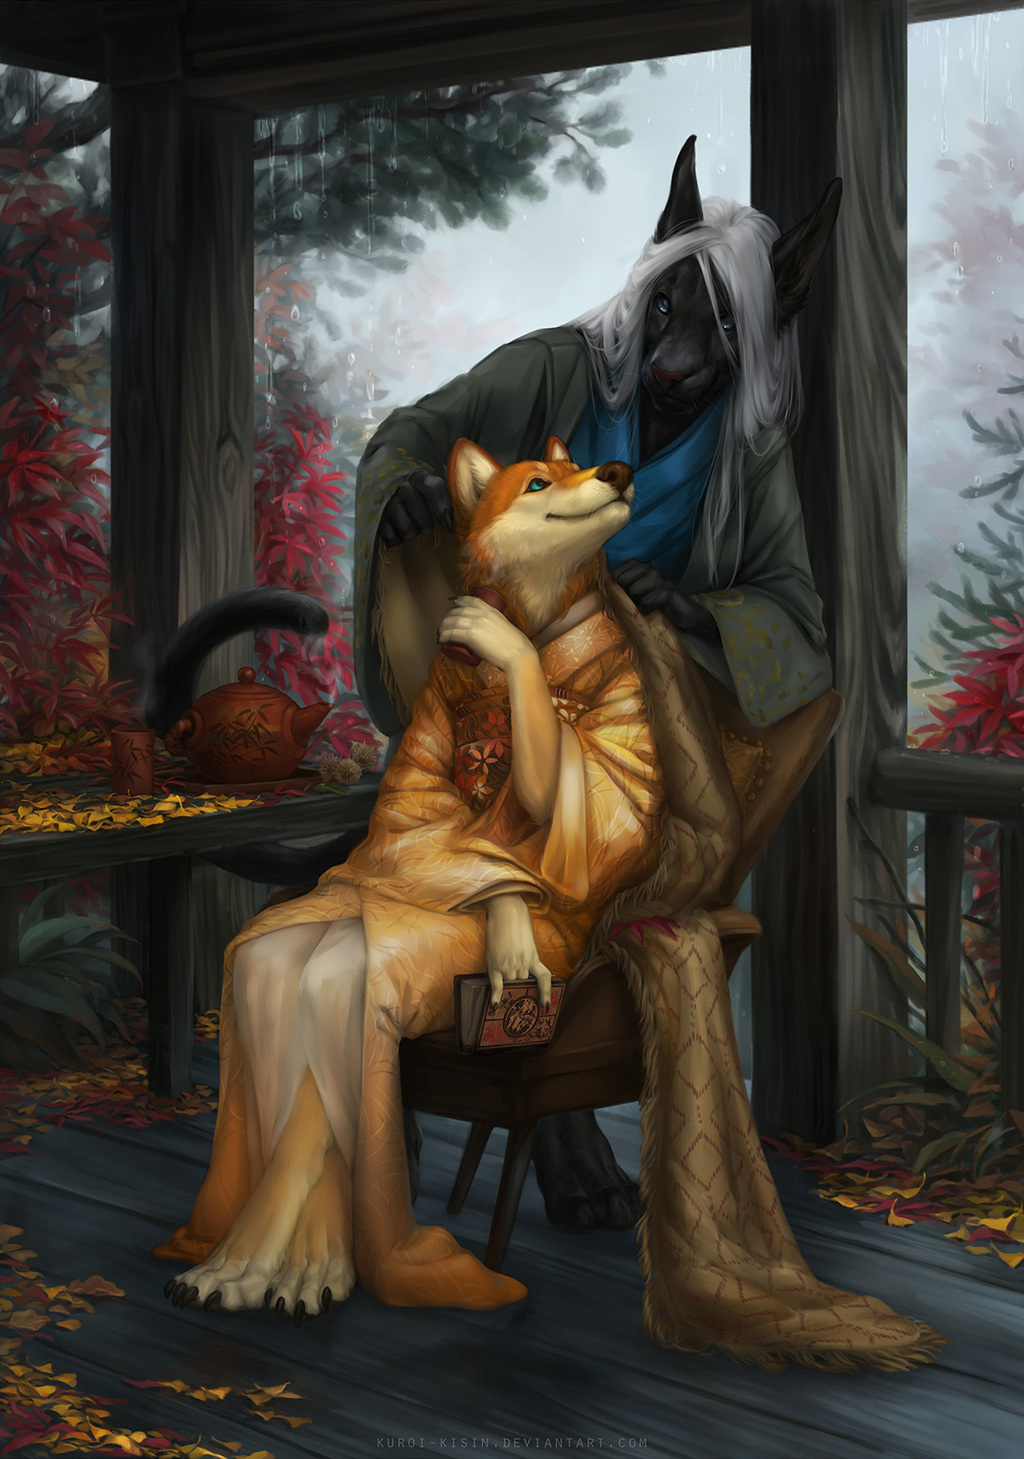 Most recent image: Autumn Morning - by Kur0i